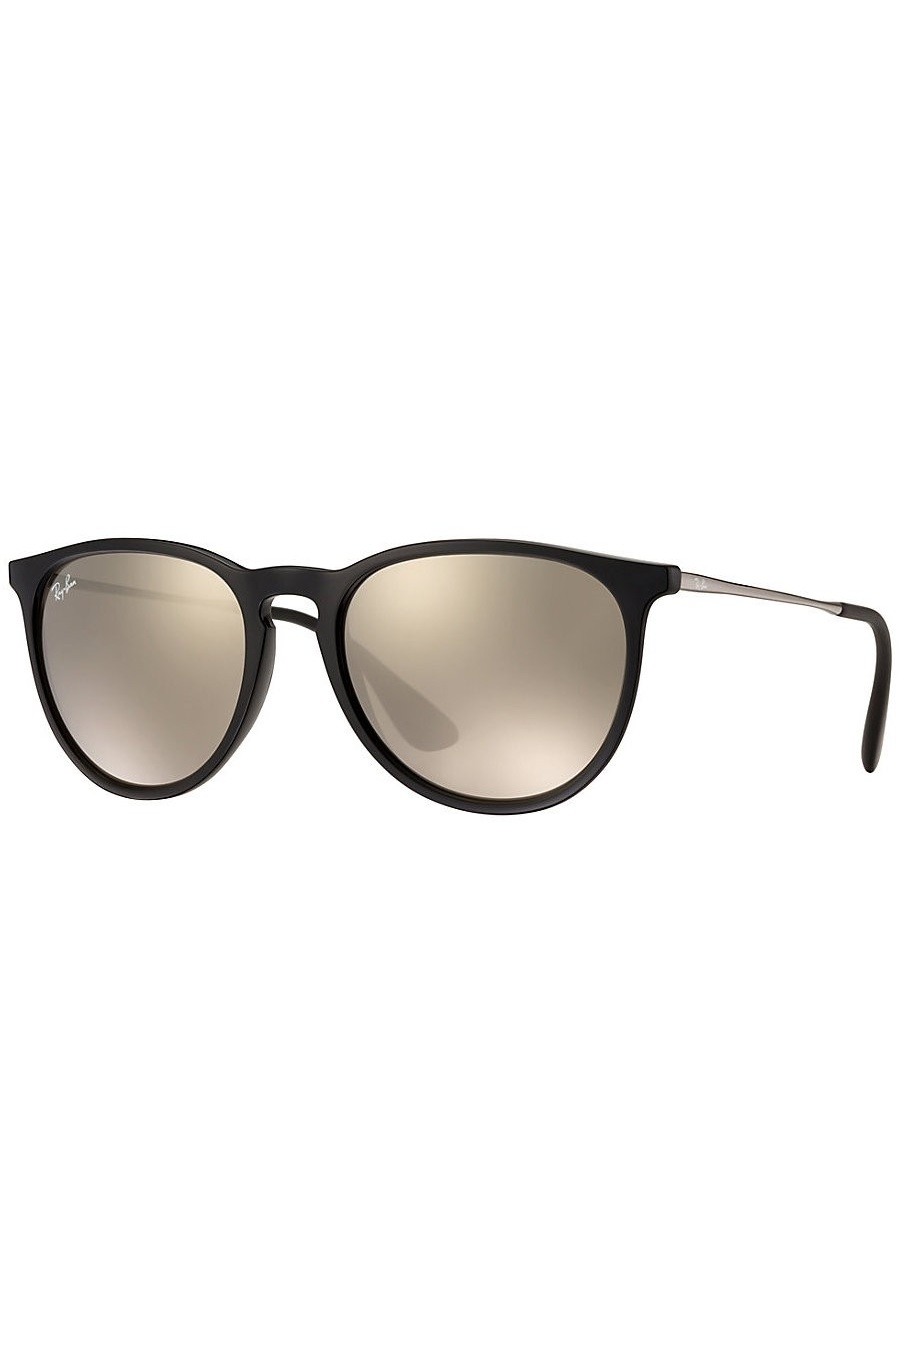 RAY-BAN RB4171 601/5A ERIKA COLOR MIX